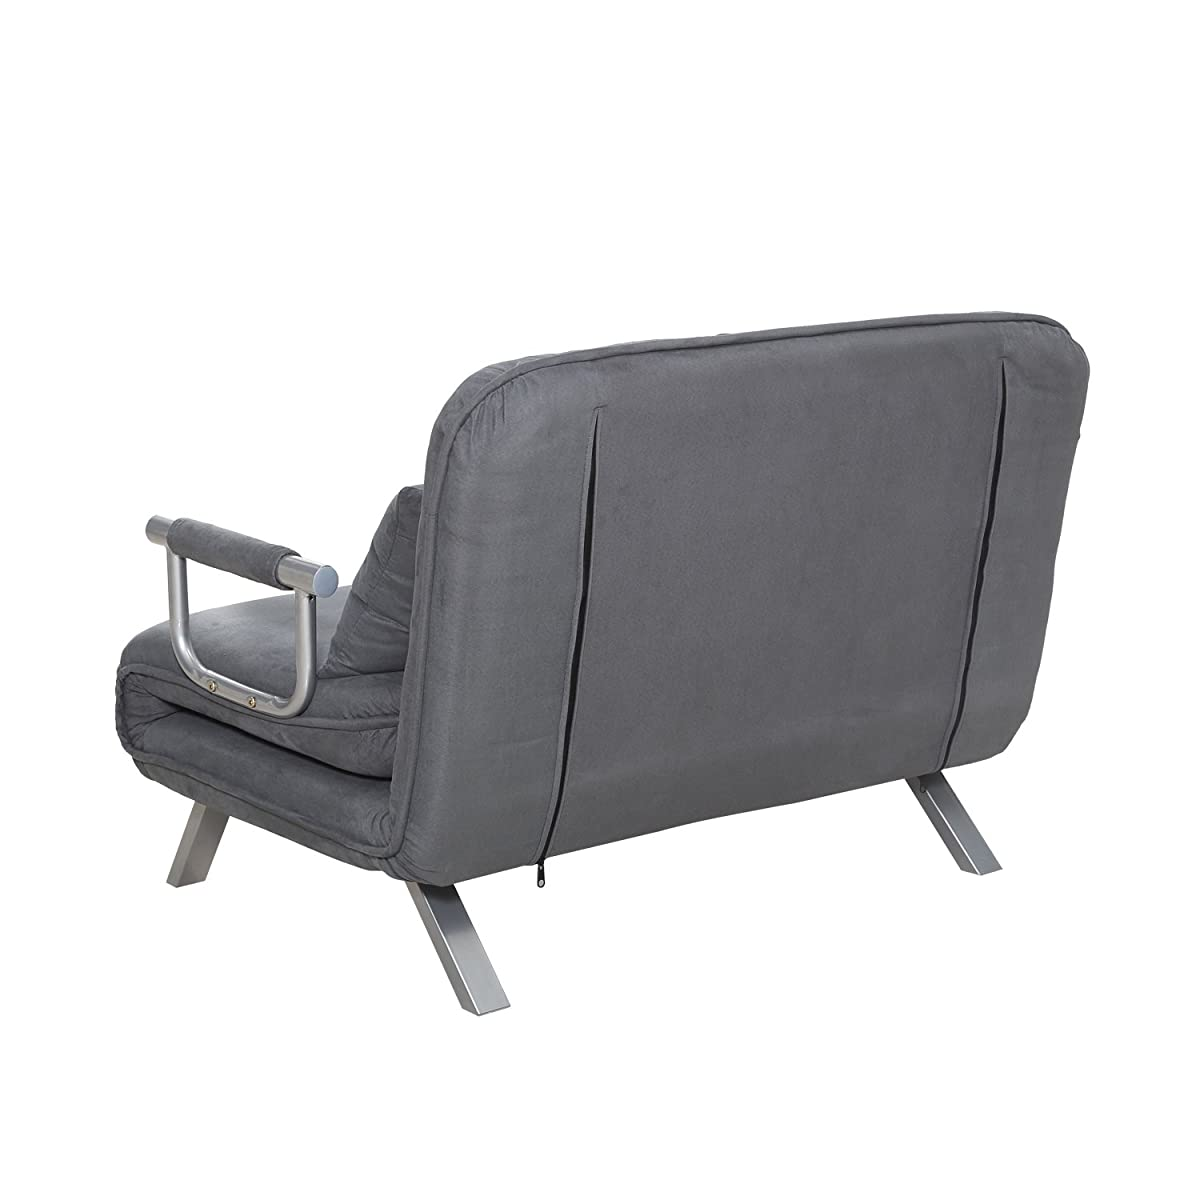 HomCom Twin Size Folding 5 Position Steel Convertible Sleeper Bed Chair - Grey